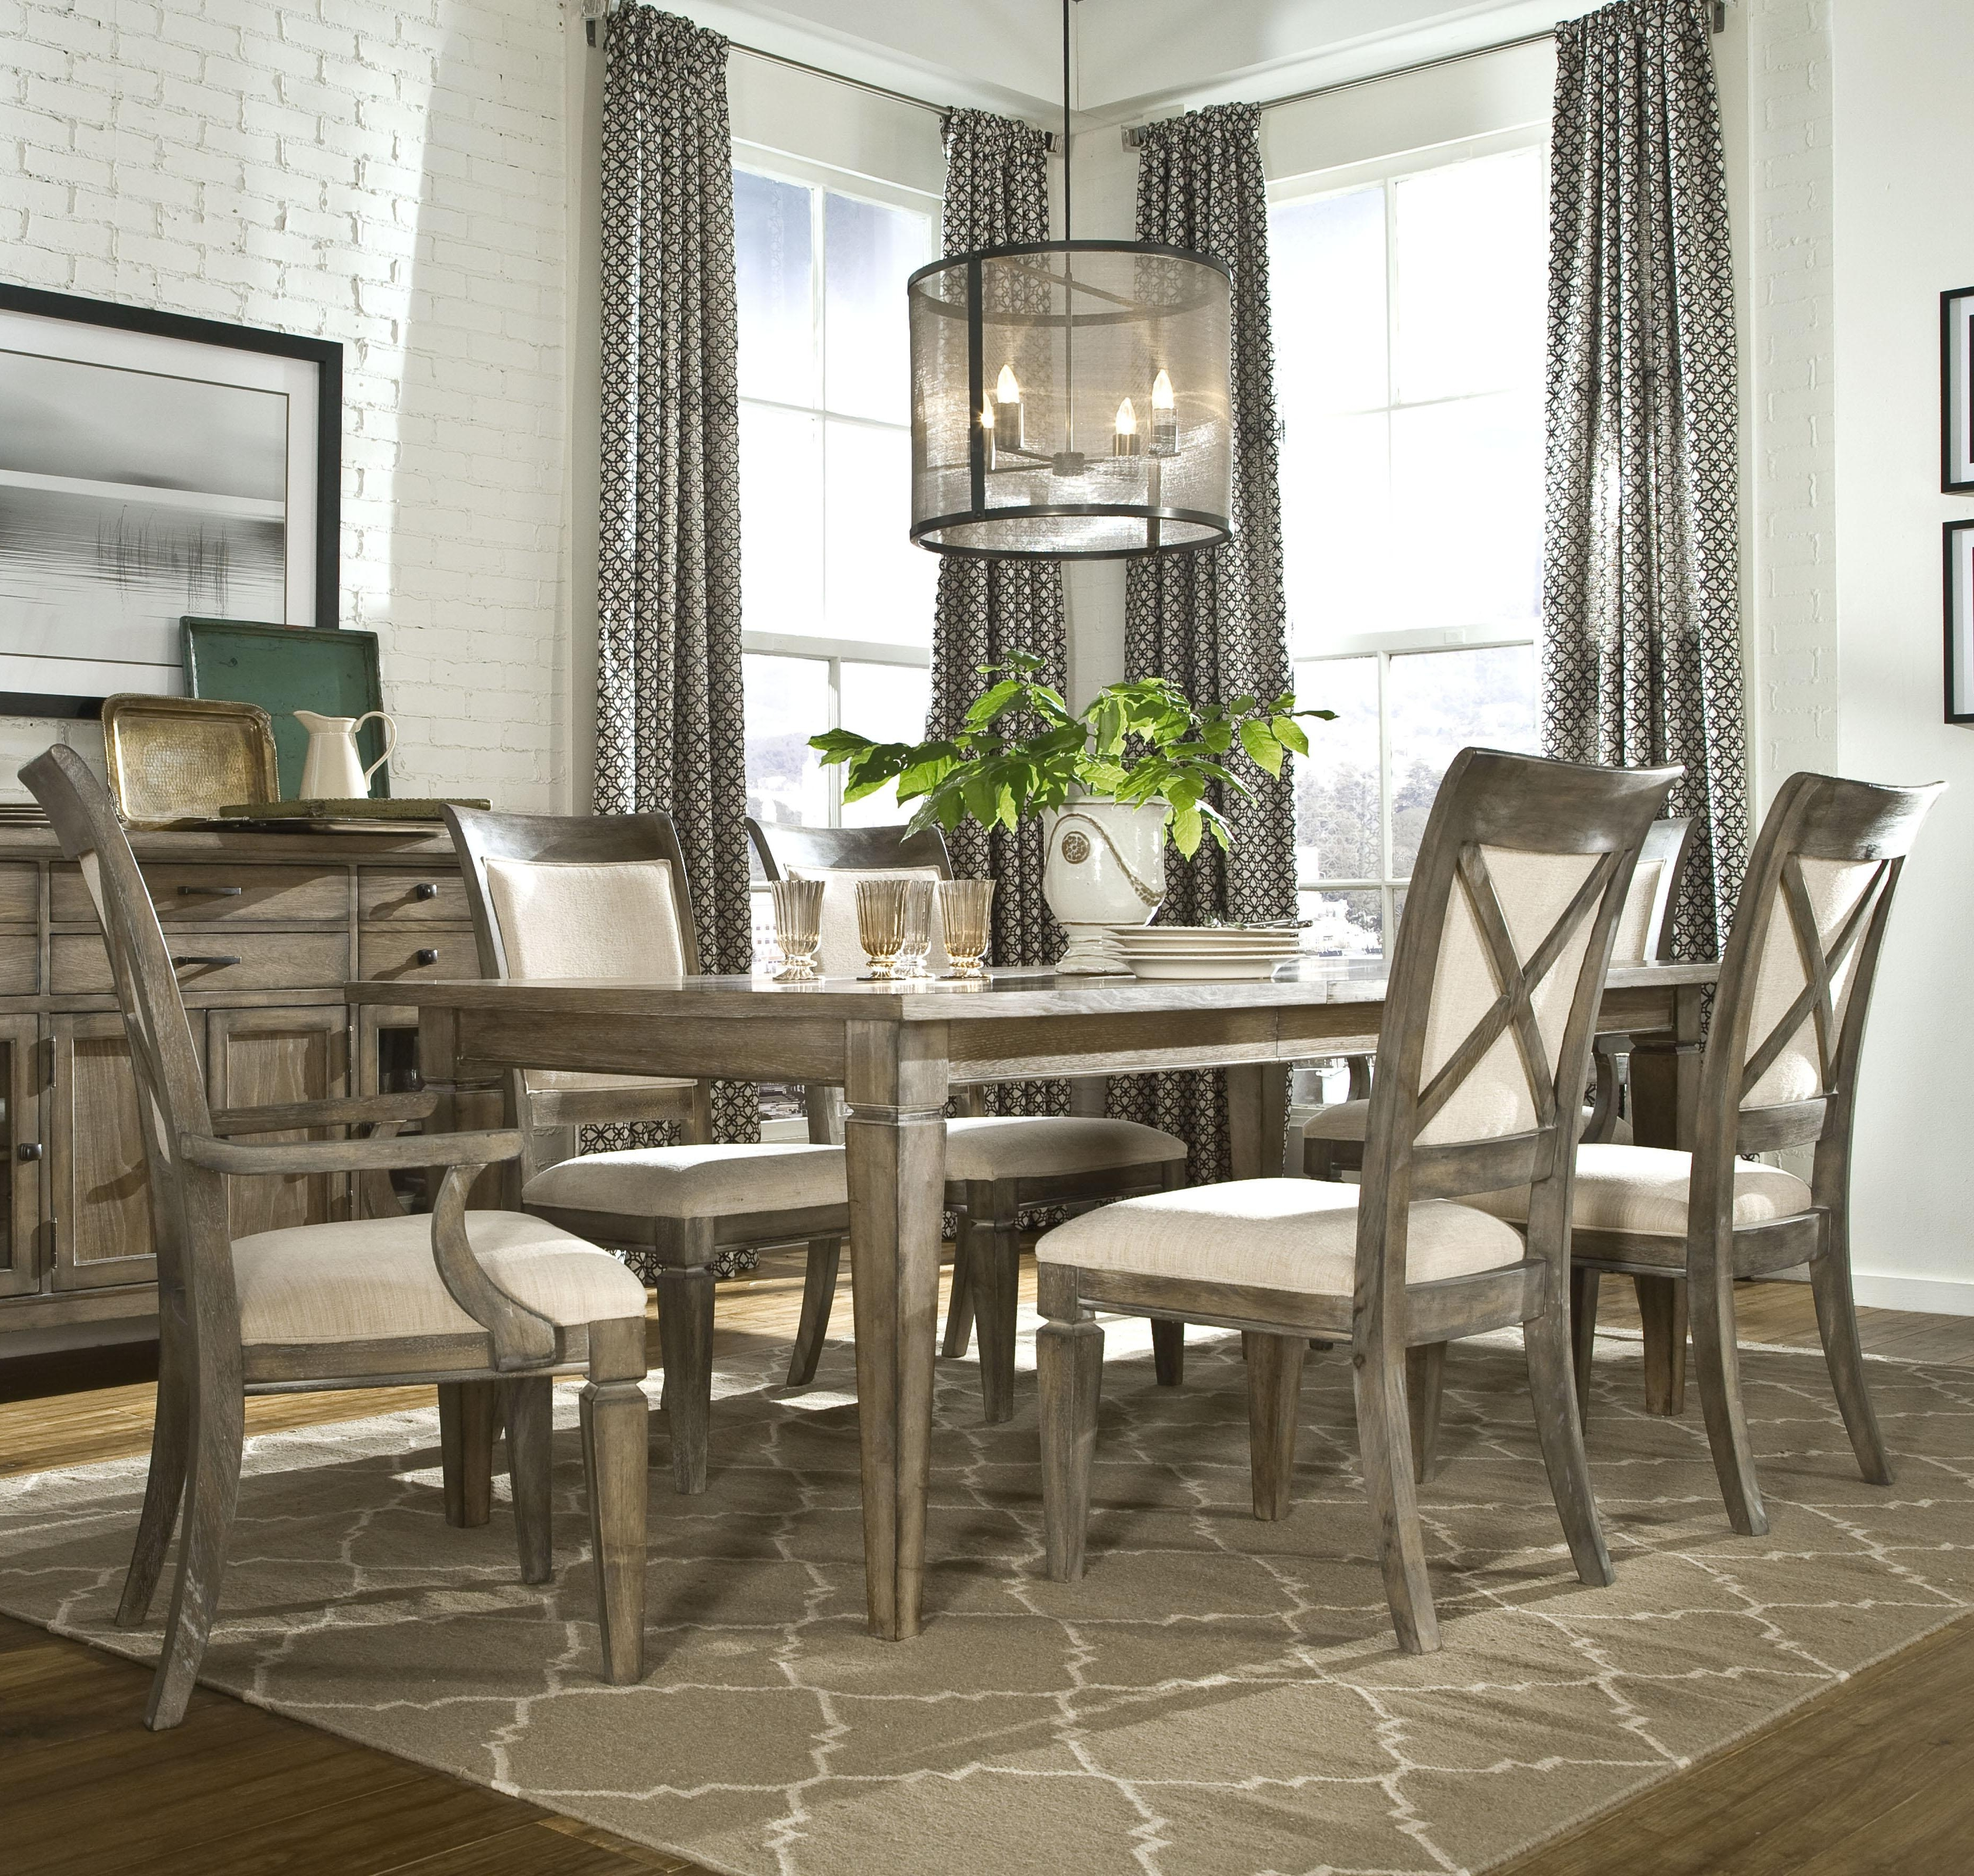 Trendy Jaxon 7 Piece Rectangle Dining Sets With Upholstered Chairs Regarding Kitchen Dinette Sets 7 Piece Dining Set Cheap 7 Piece Counter Height (View 8 of 25)